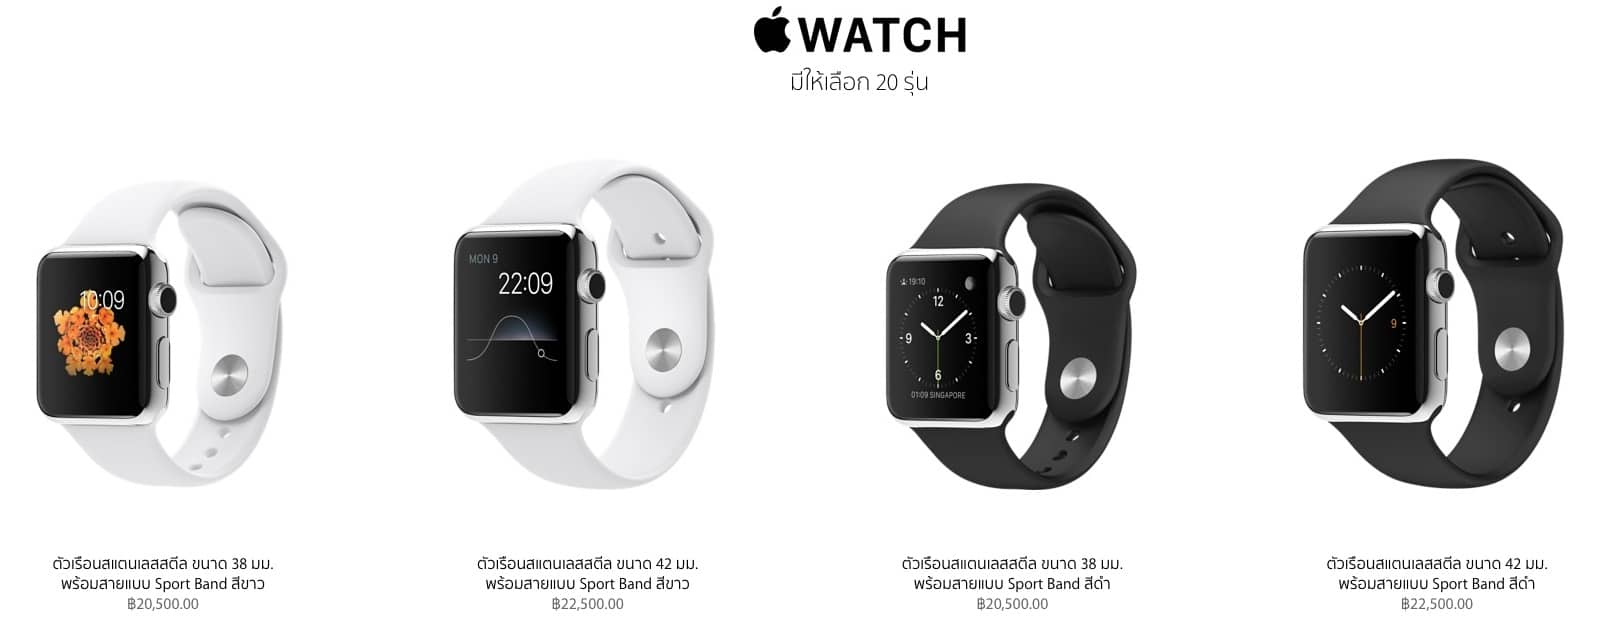 apple-watch-price-in-thailand-sport-collection-stainless-steel-edition.35 PM